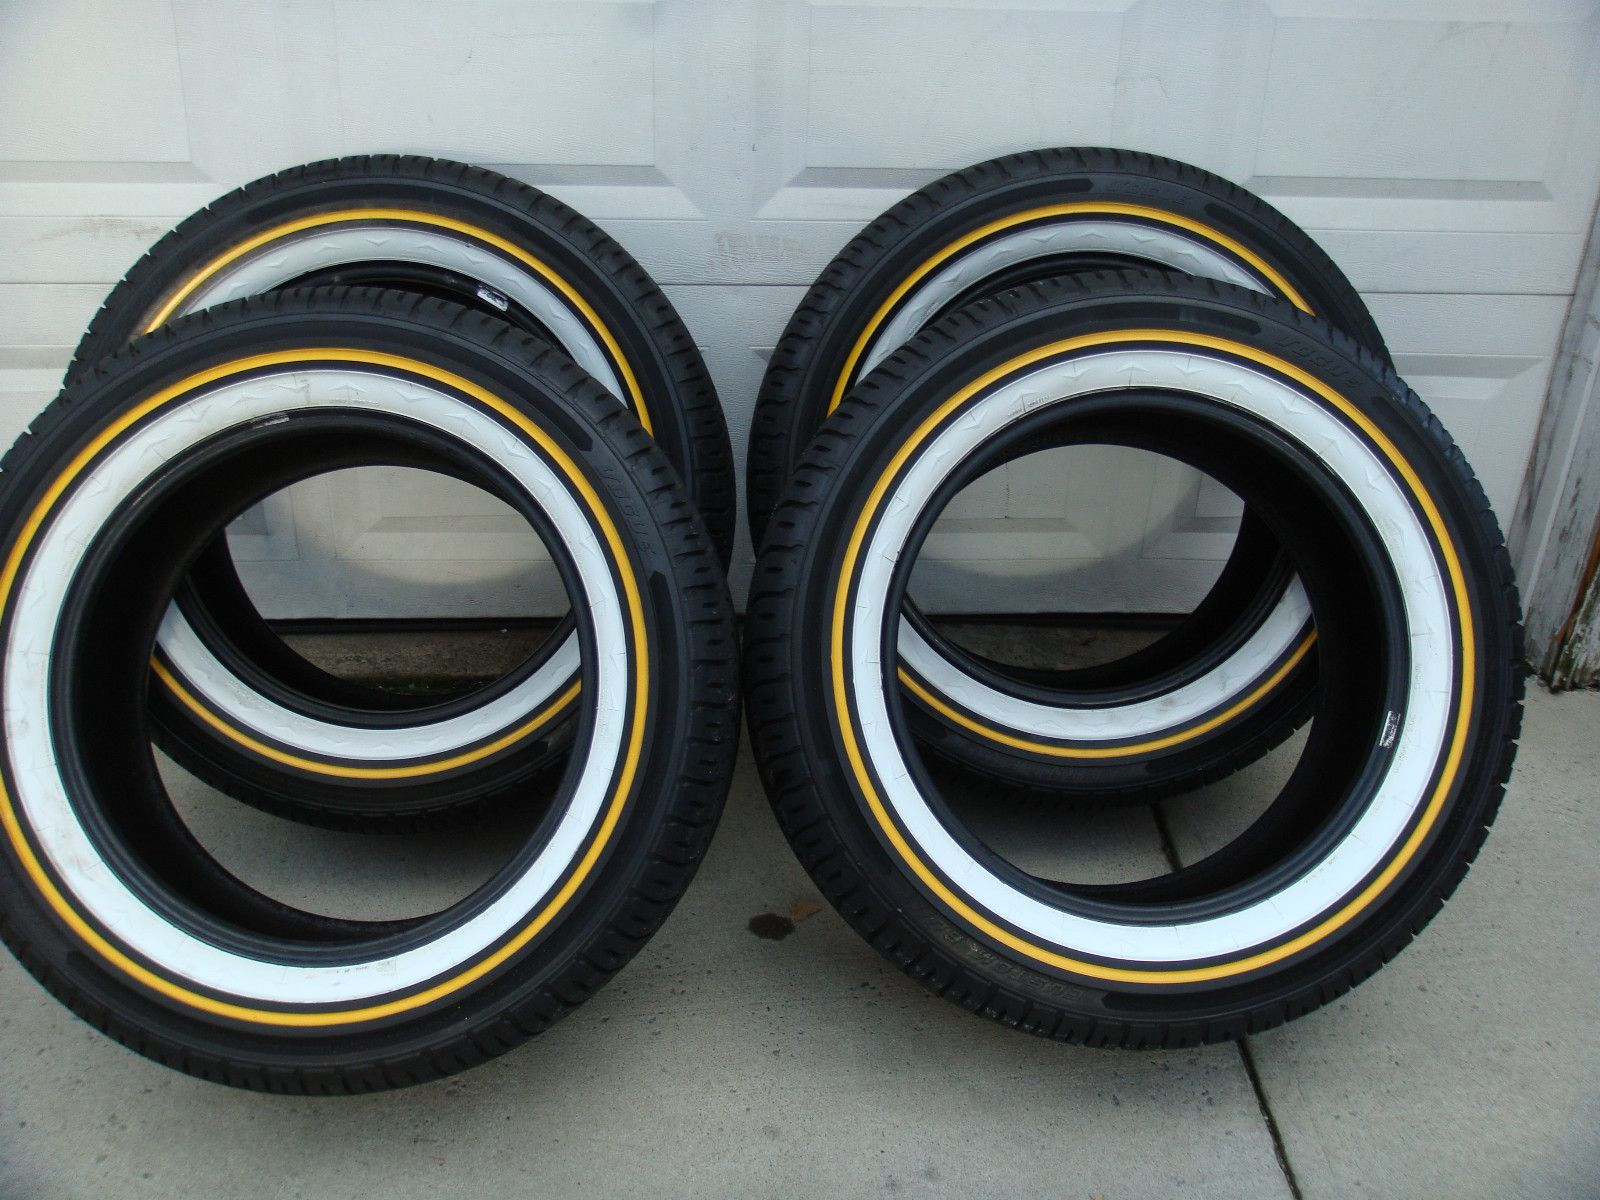 Lowrider Rims And Tires >> Mayonaise and Mustard! Vogue Tires (Tyres, White & Gold, Used) | STILL--the love of a lifetime ...